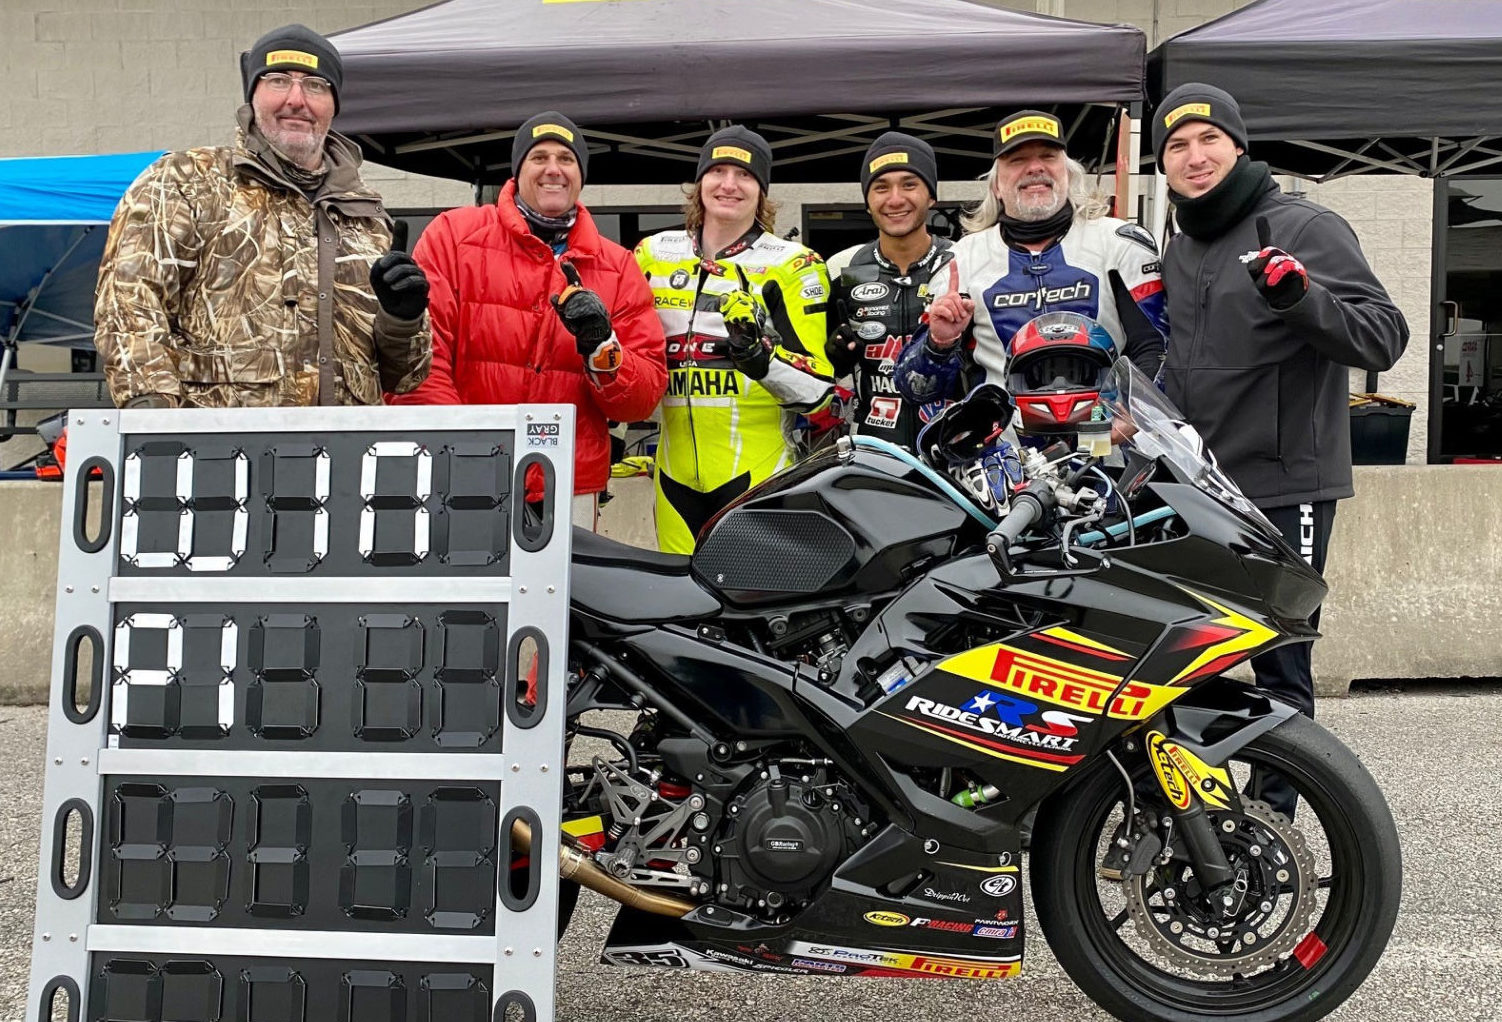 Team RideSmart Pirelli (from left): Team Owner John Hutchinson, Ty Howard, Kevin Randall, Kevin Olmedo, Derick Thomas, and Team Captain Michael Klesel. Photo by Sasha Lovan, courtesy Team RideSmart Pirelli.